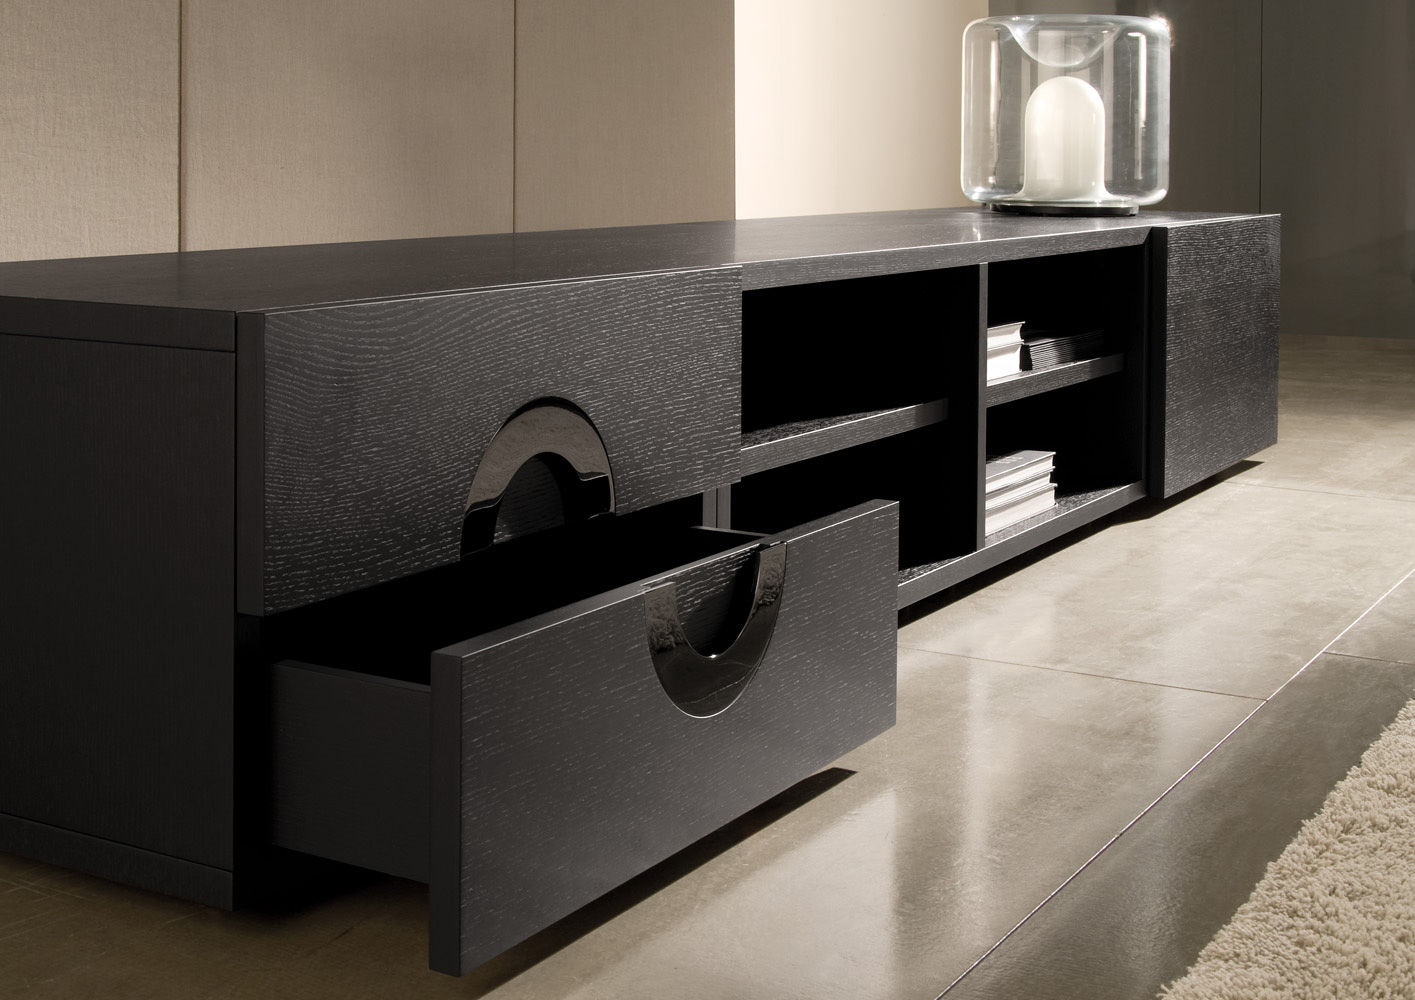 Archipenko unit for Living room cupboard designs